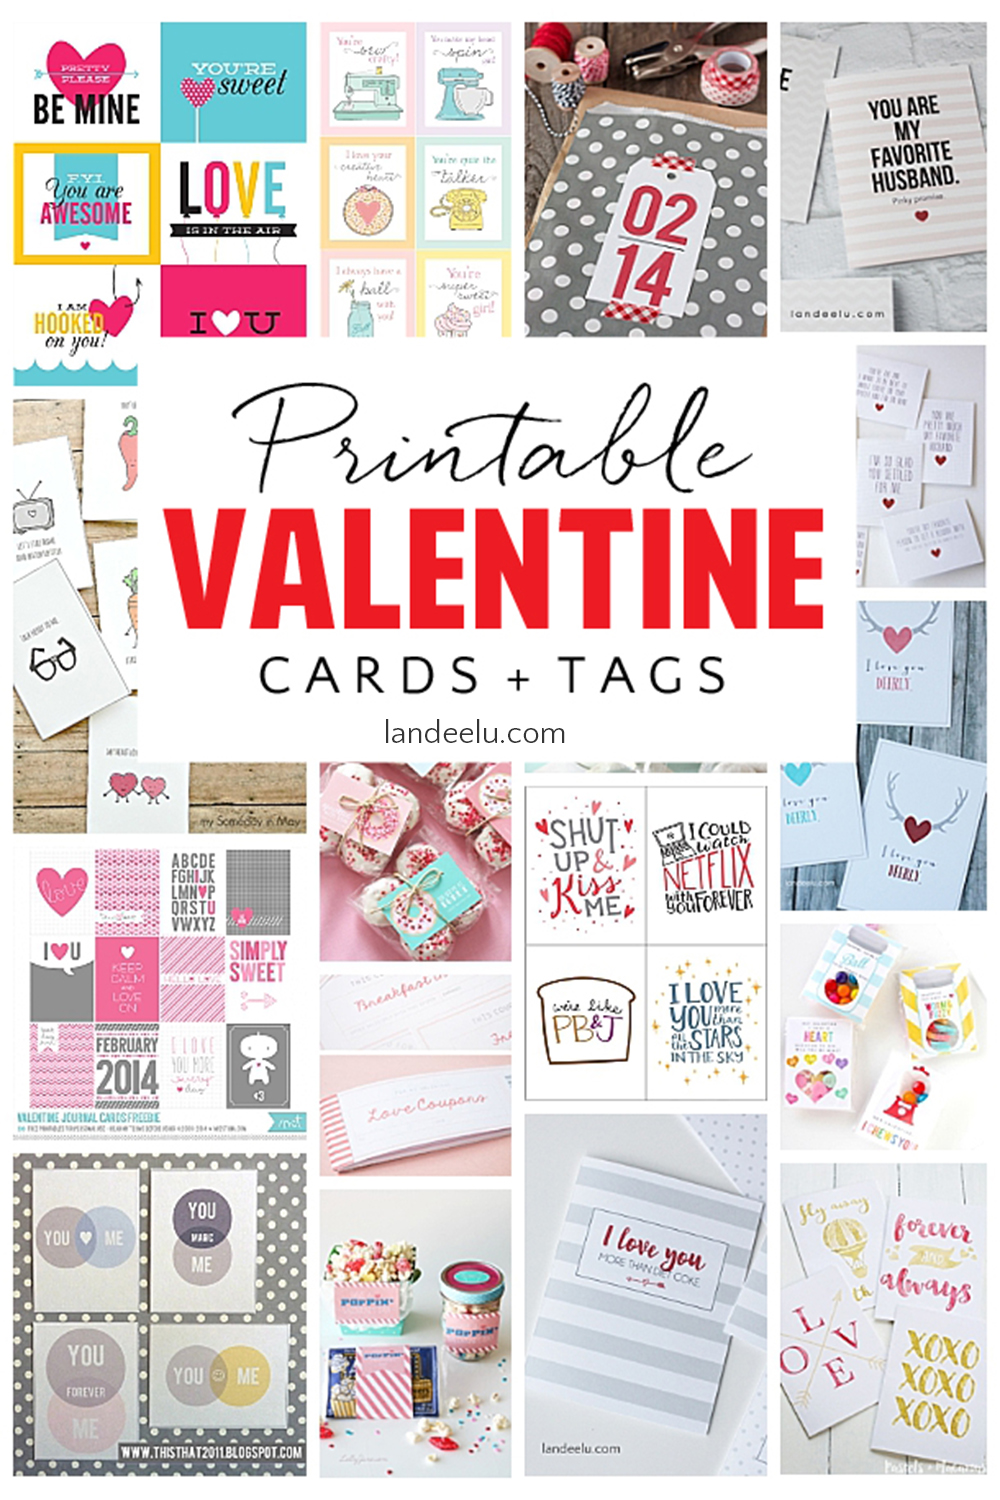 Tons of darling Valentine's Day Cards and Tags! #valentinesday #freevalentinesdayprints #valentinesdaycards #lovedaycards